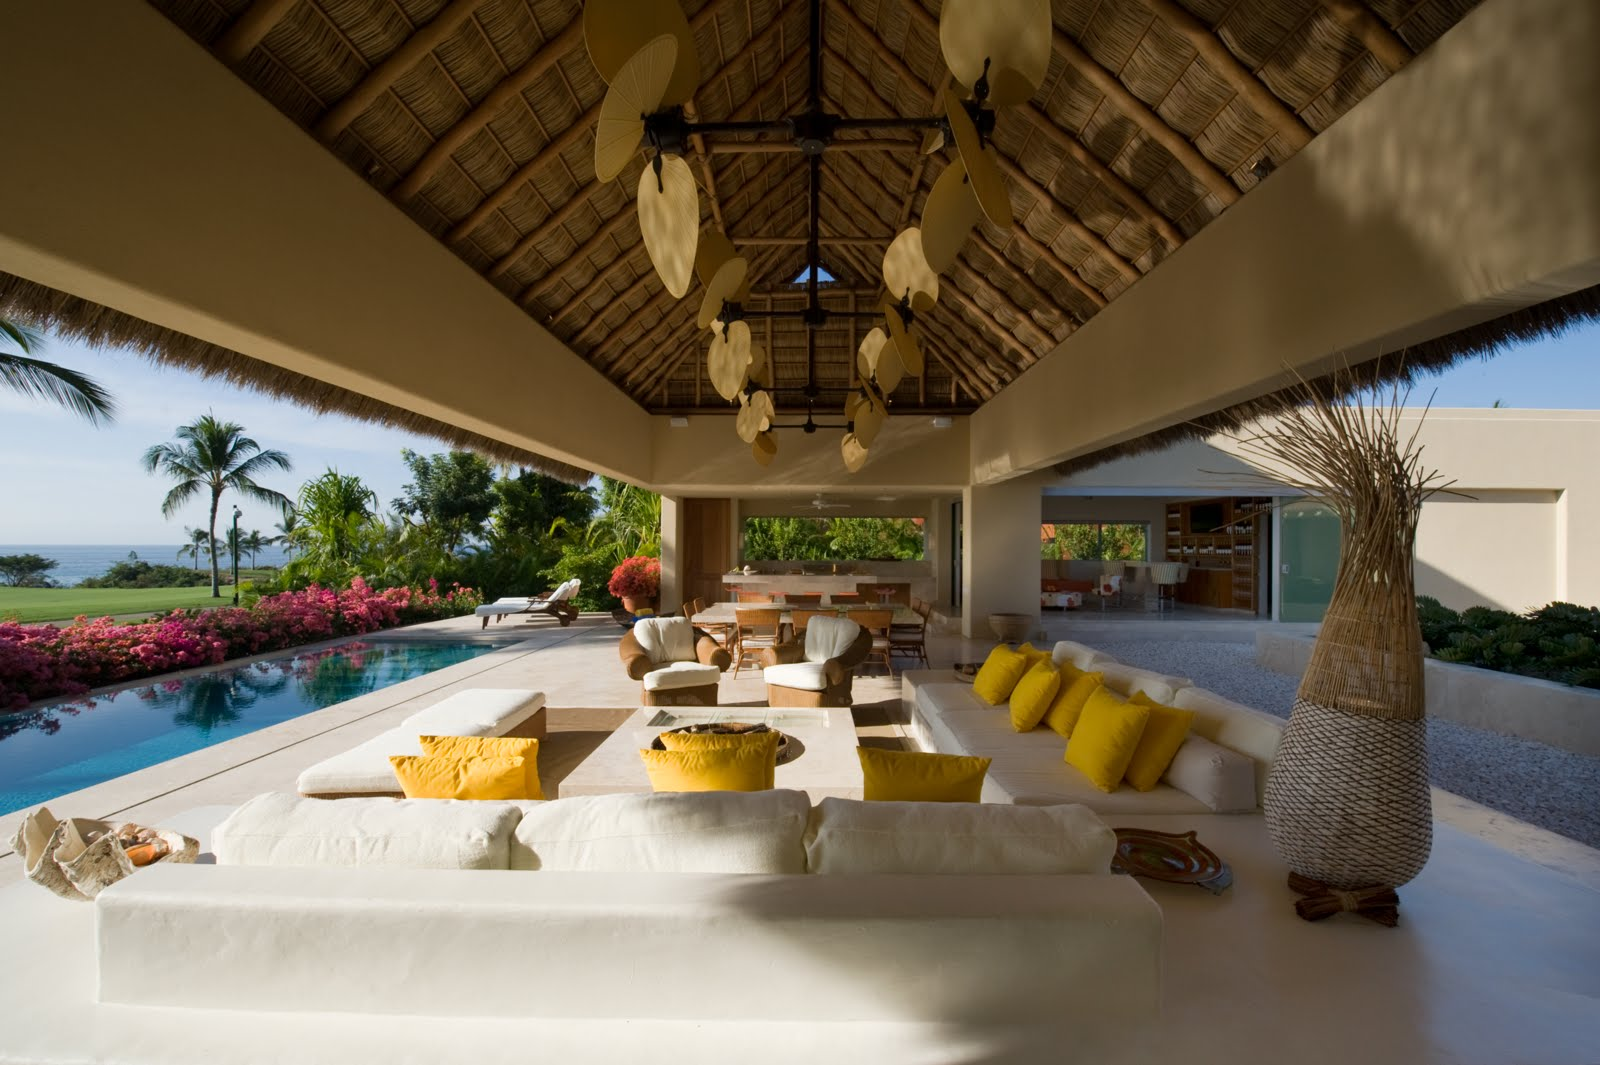 punta mita rentals archives - lpr luxury international